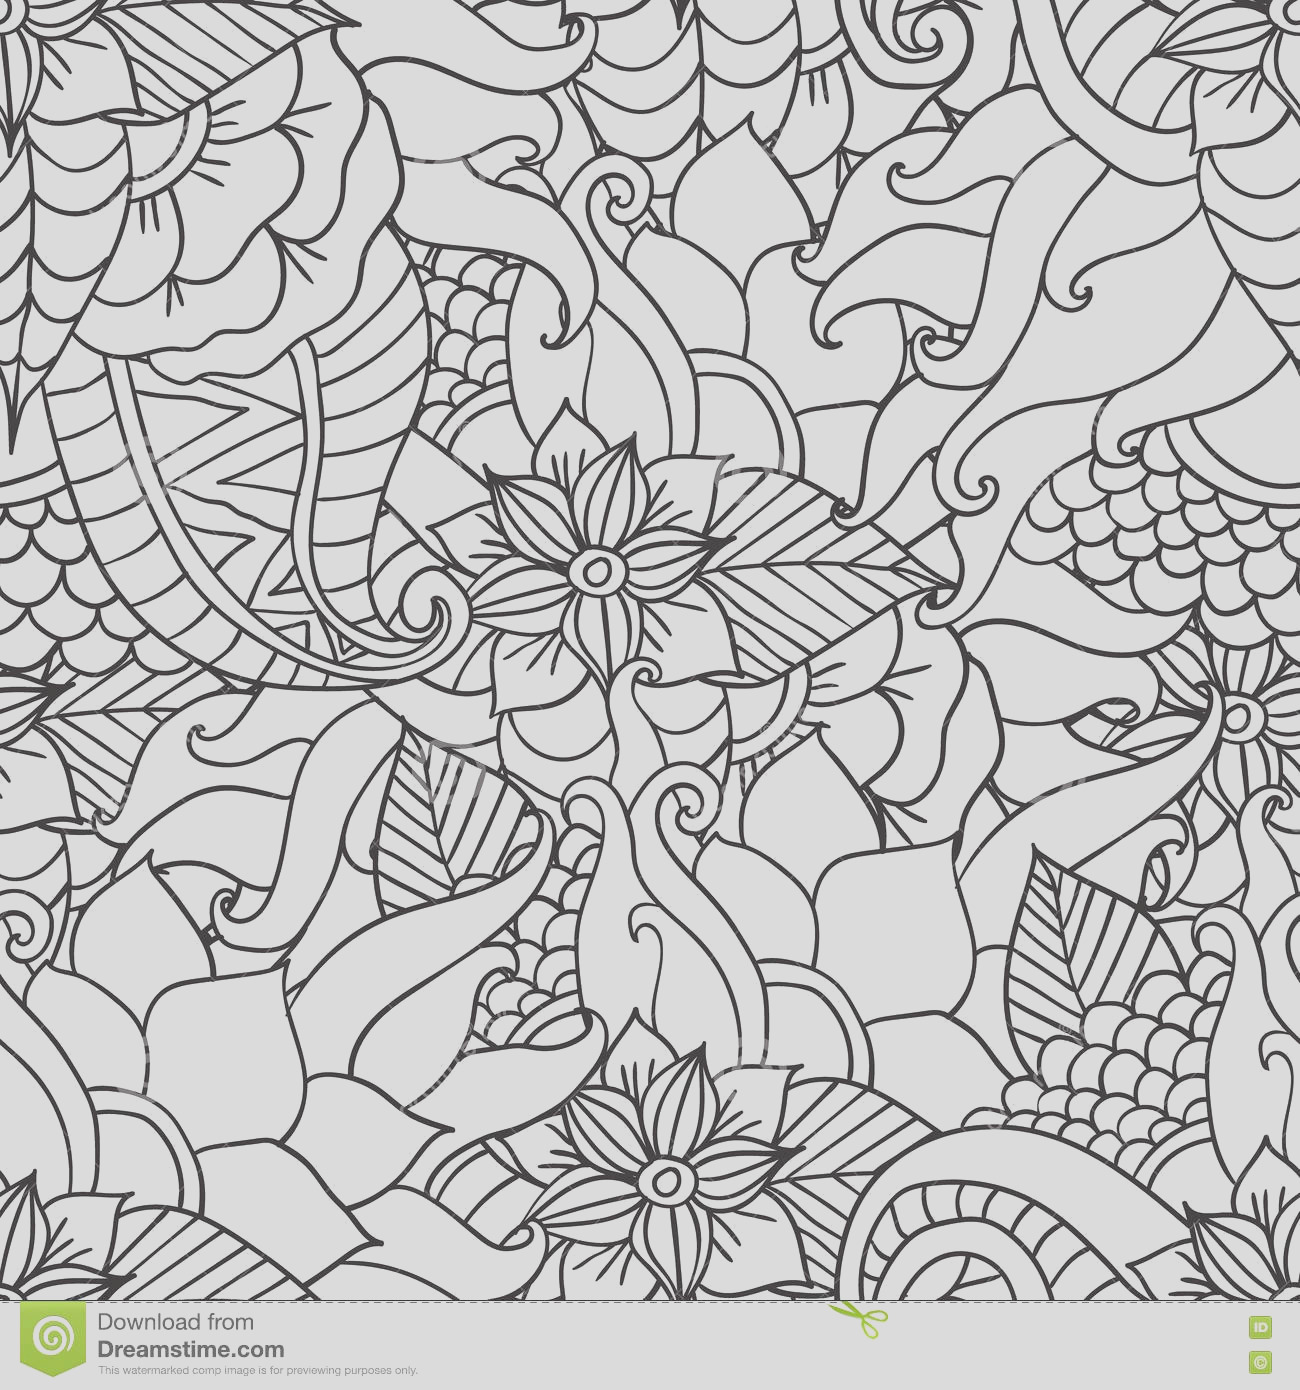 stock illustration coloring pages adults decorative hand drawn doodle nature ornamental curl vector sketchy seamless pattern artistic ethnic image